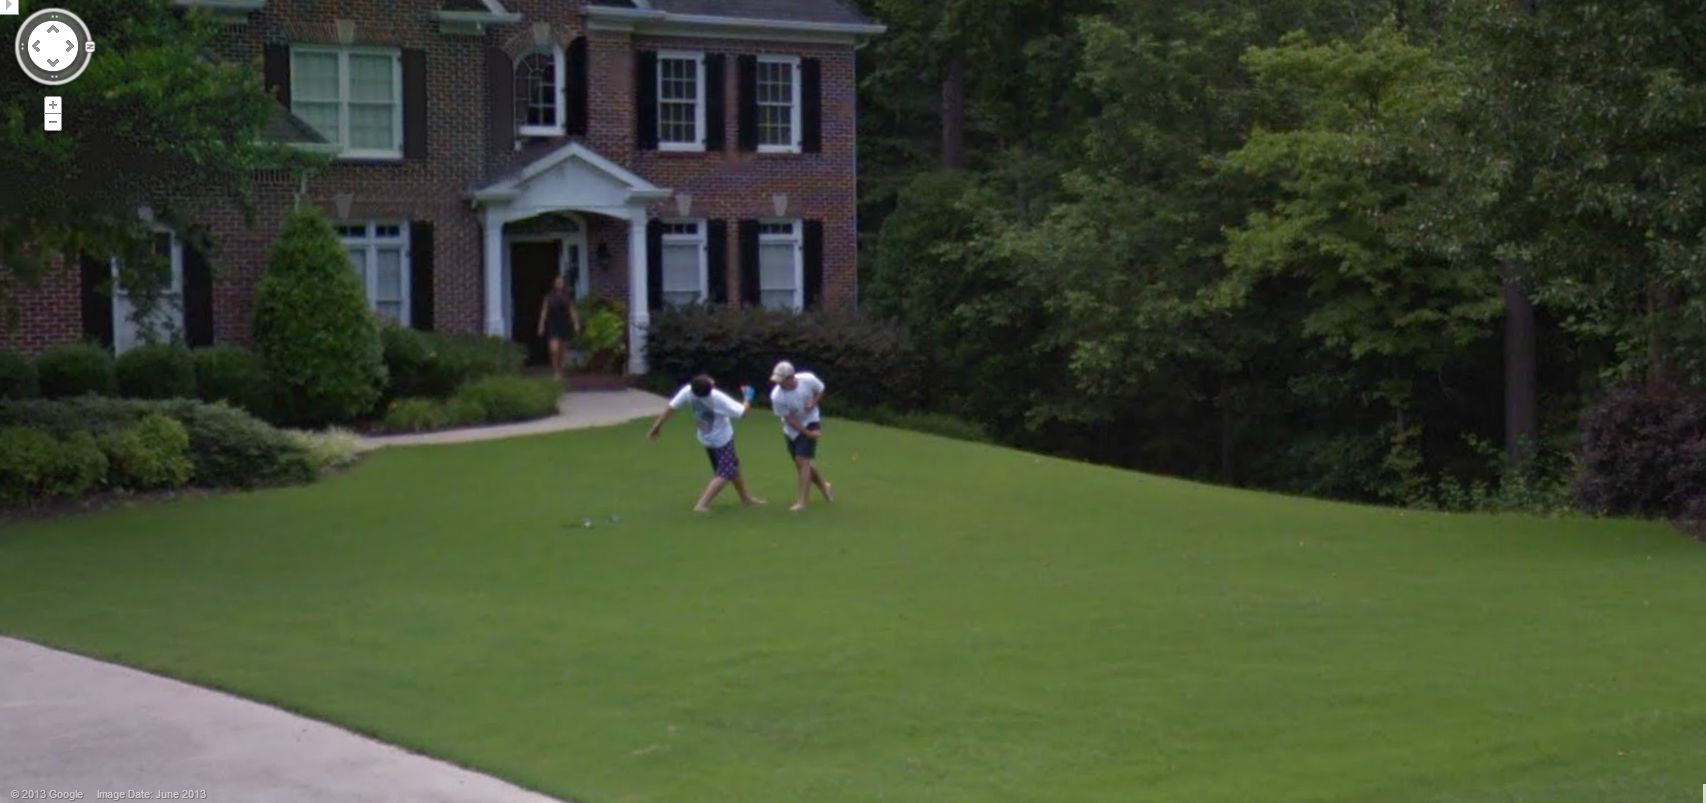 Google Captures a Fist Fight on a Georgia Lawn